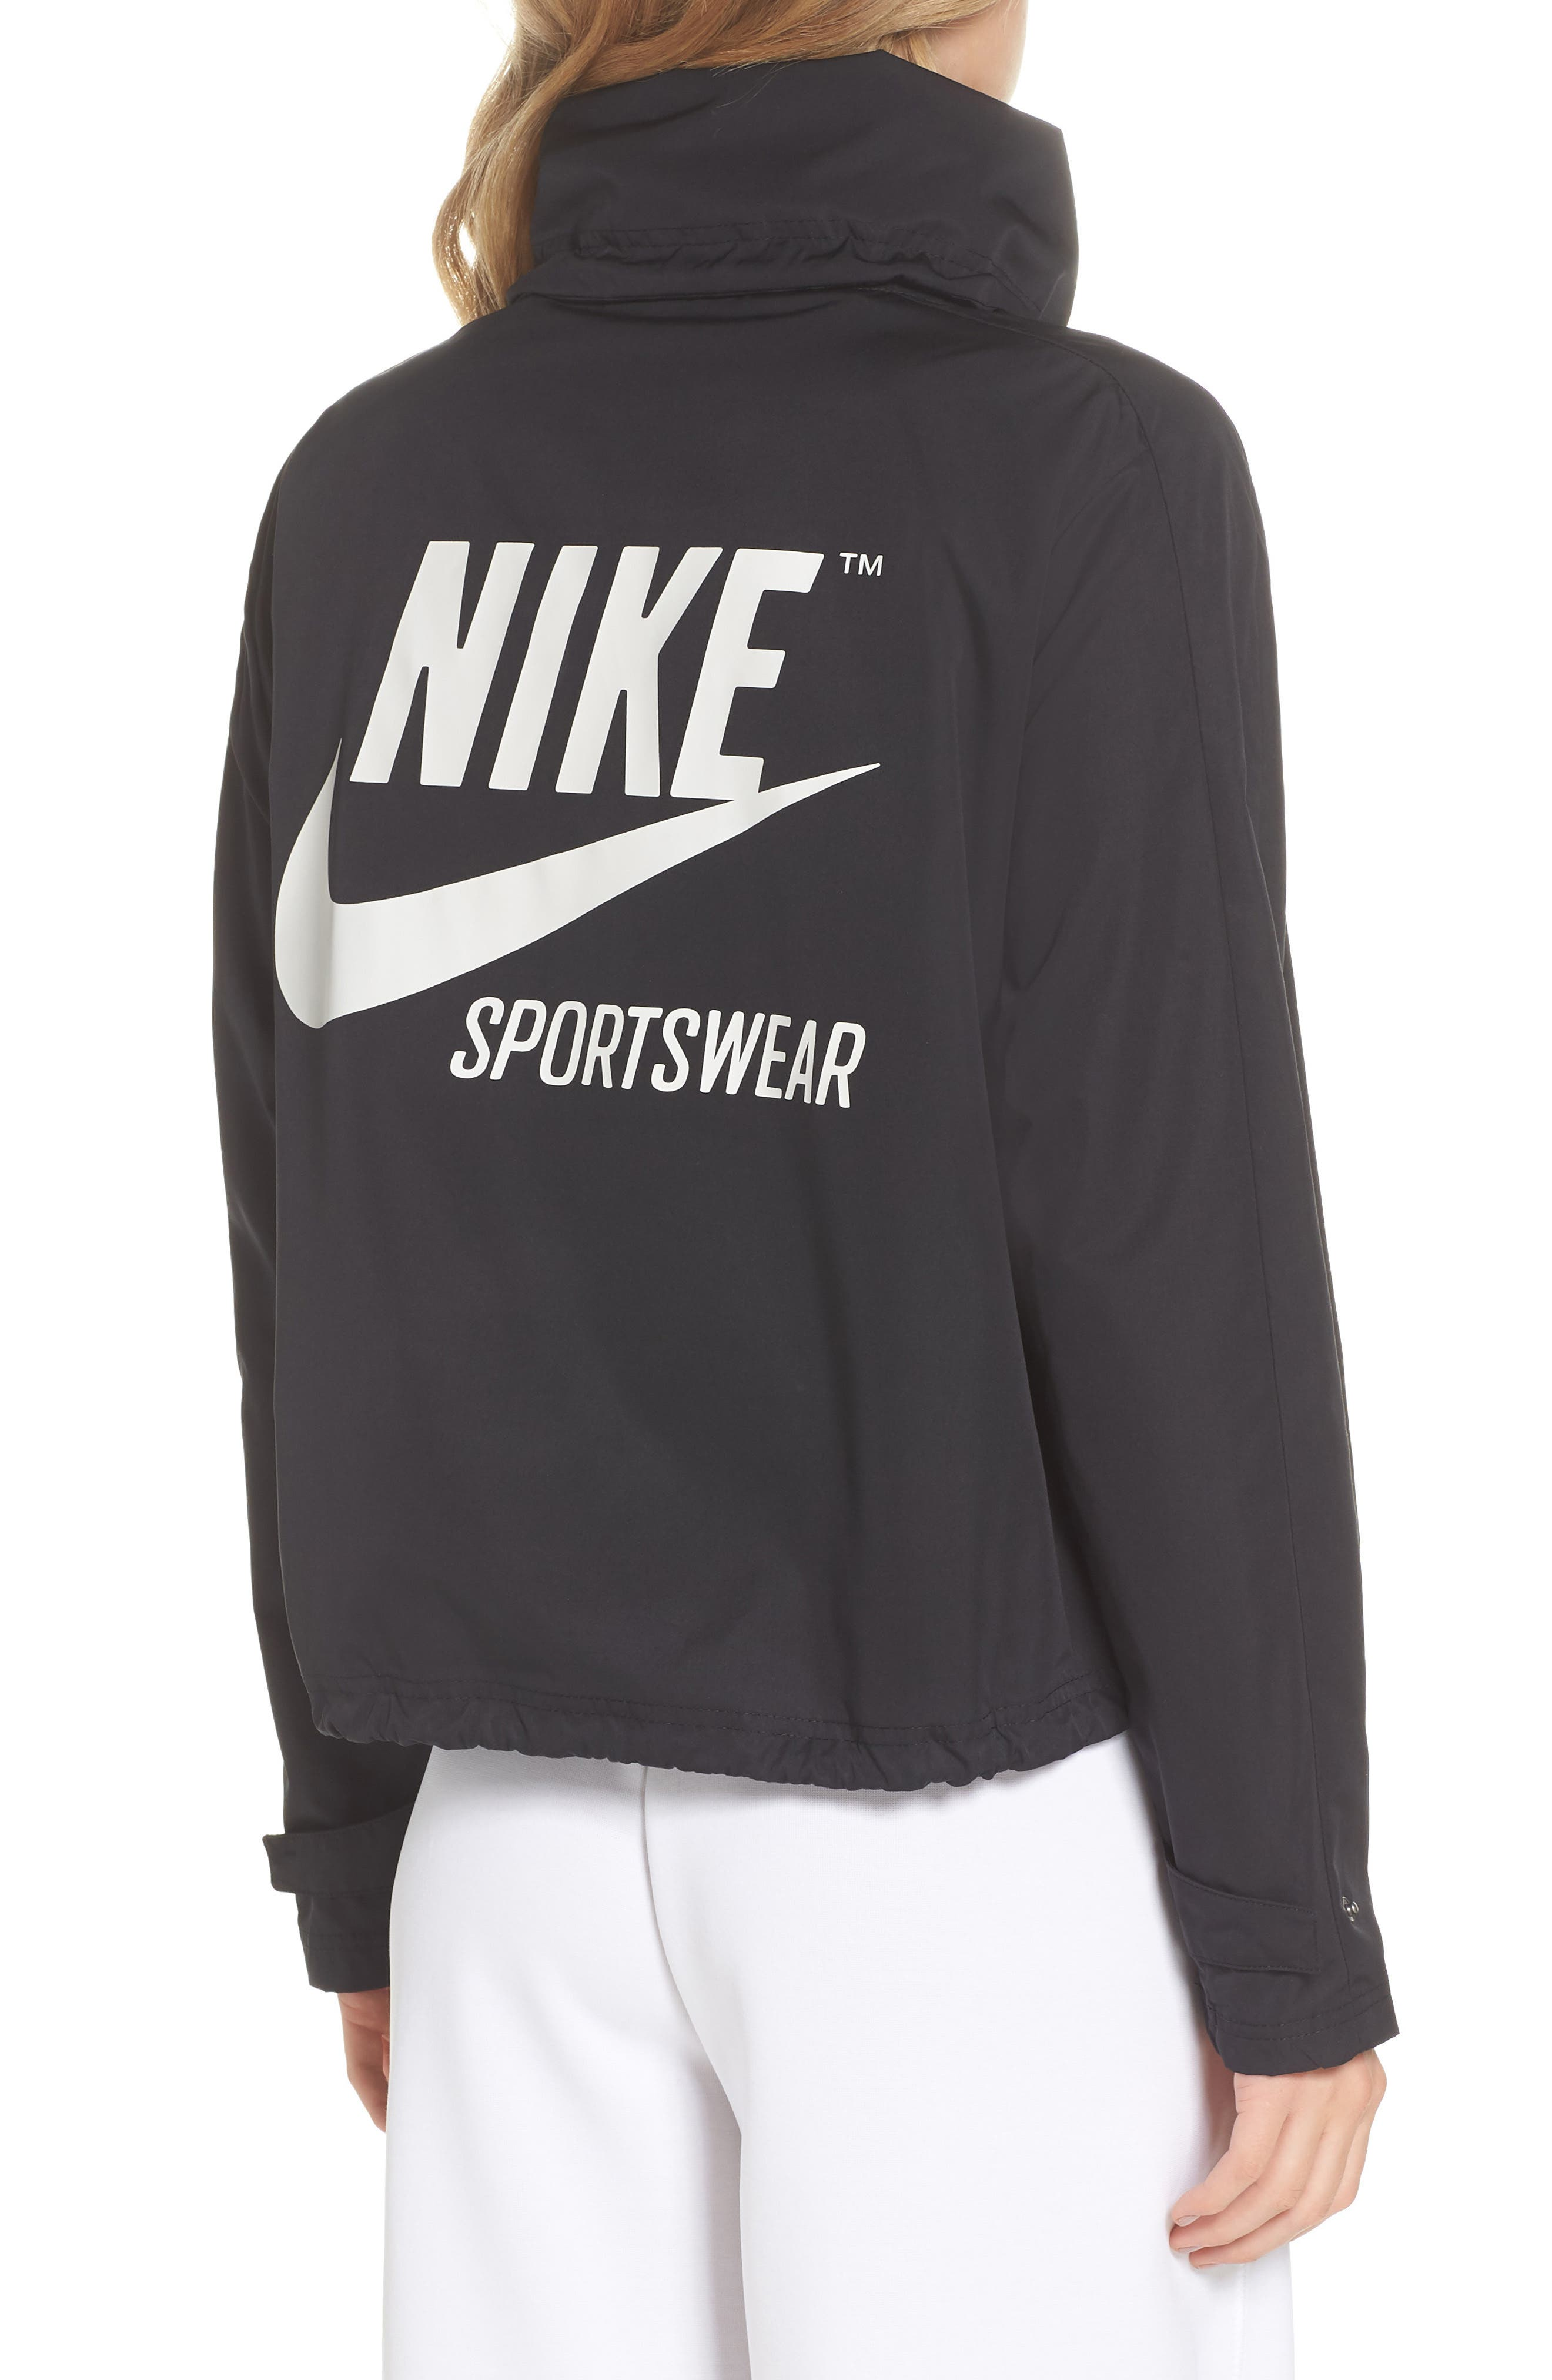 Sportswear Archive Jacket,                             Alternate thumbnail 3, color,